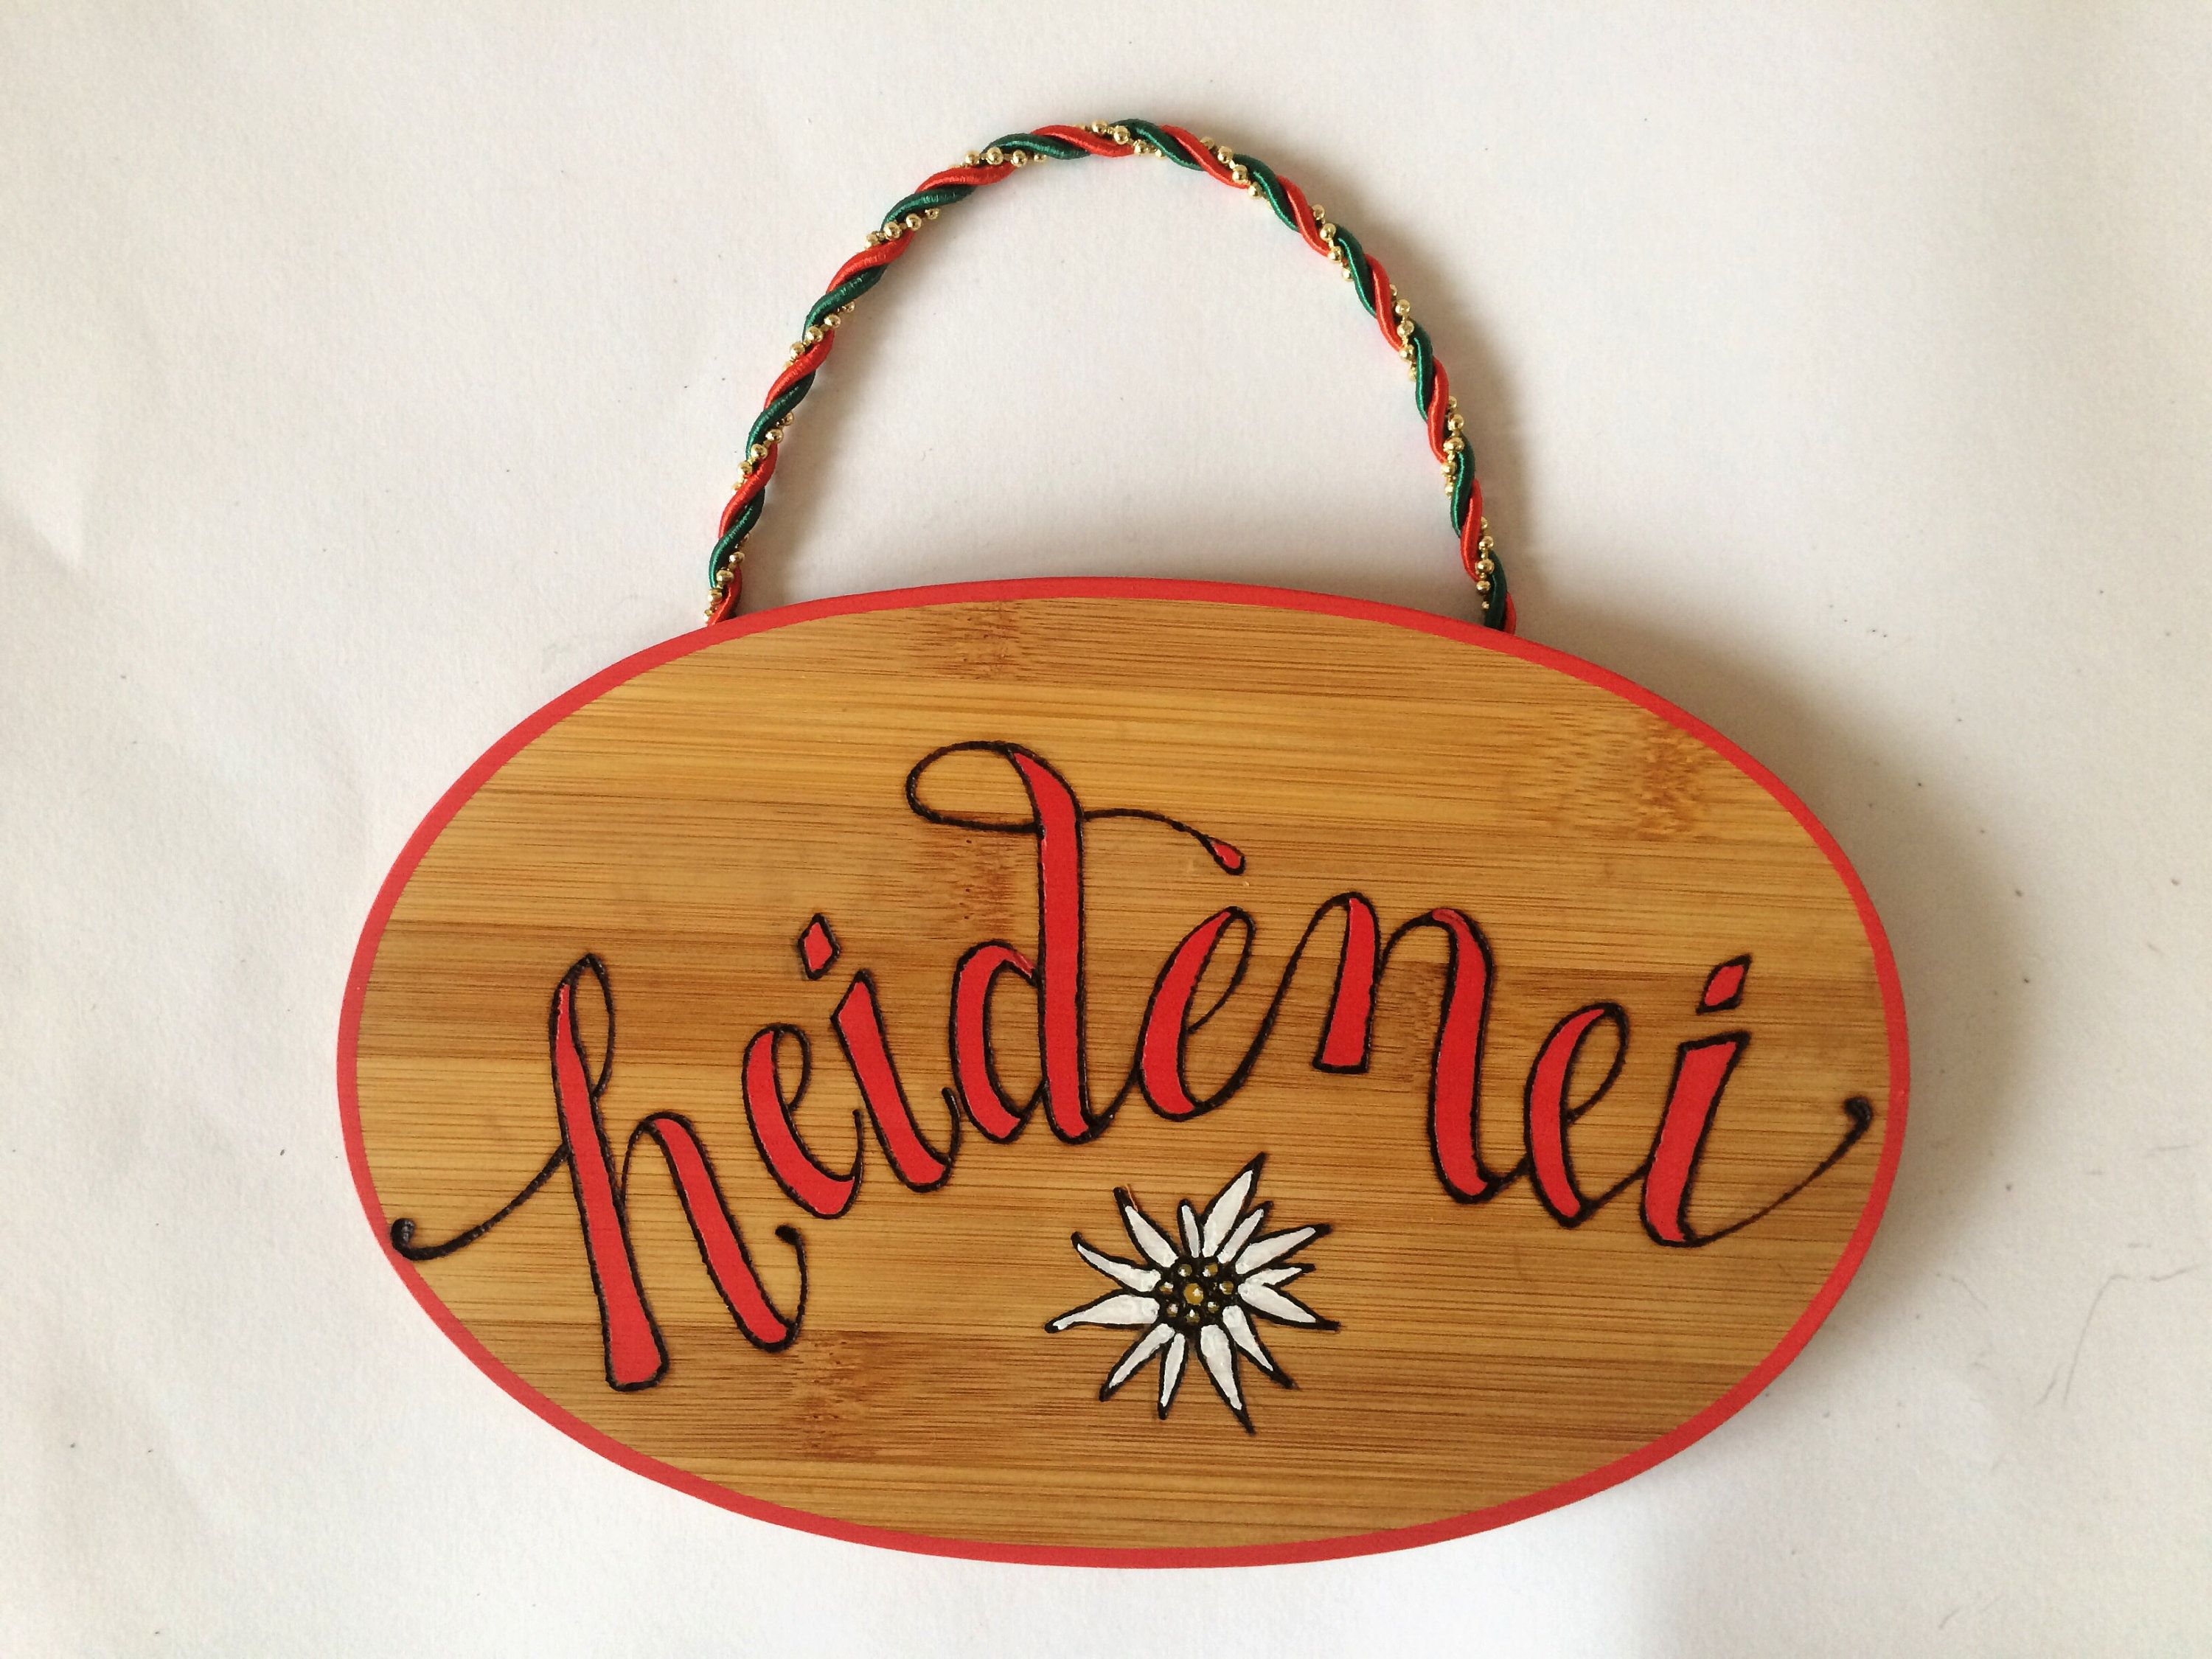 German Sign Inspirational Plaque Heidenei Gift For Friend Birthday Wood